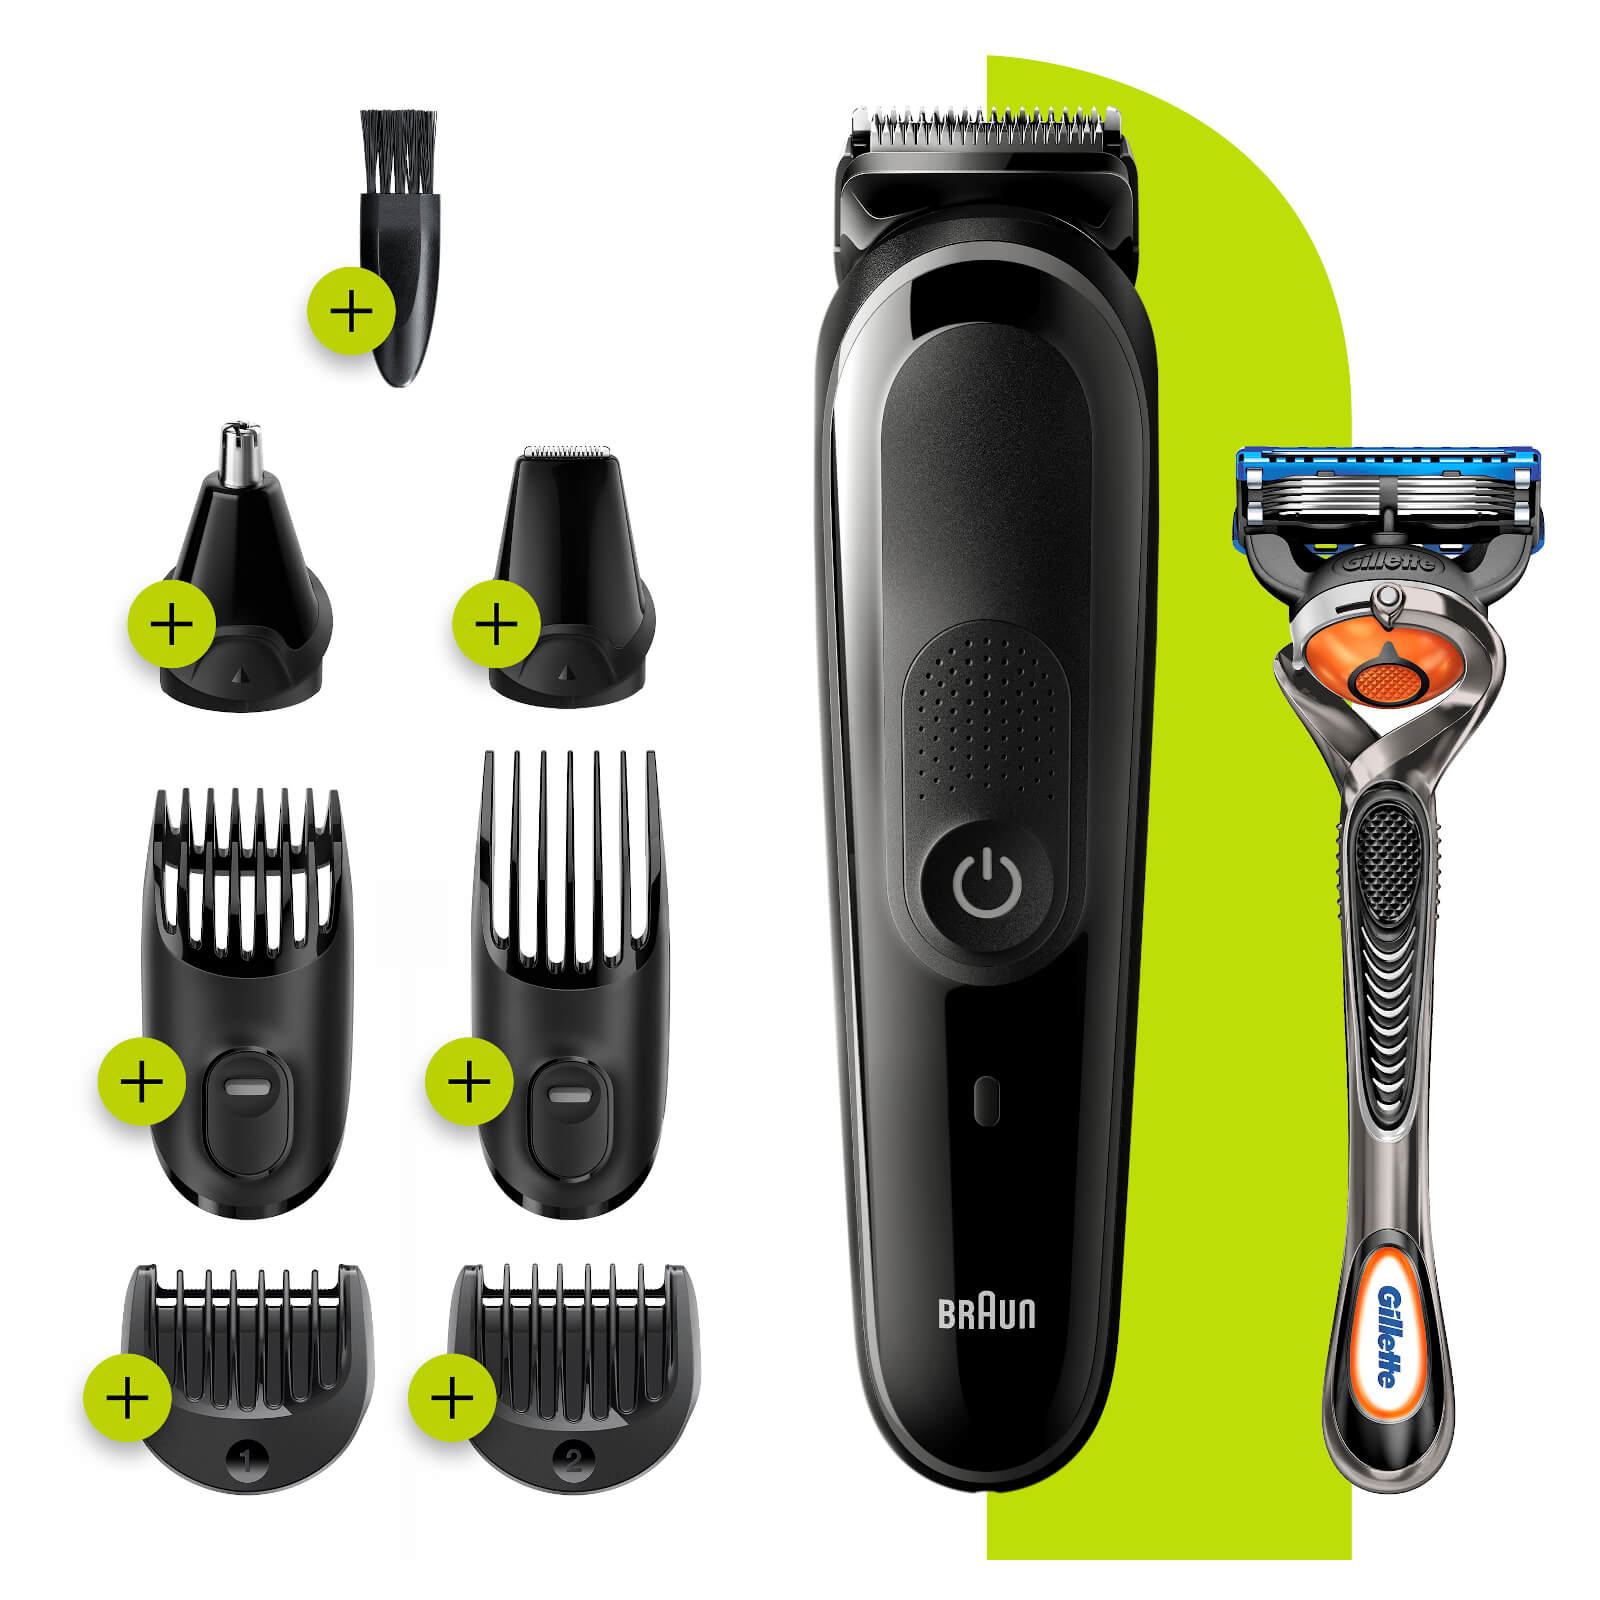 All-in-one Trimmer with 6 attachments and Gillette Razor